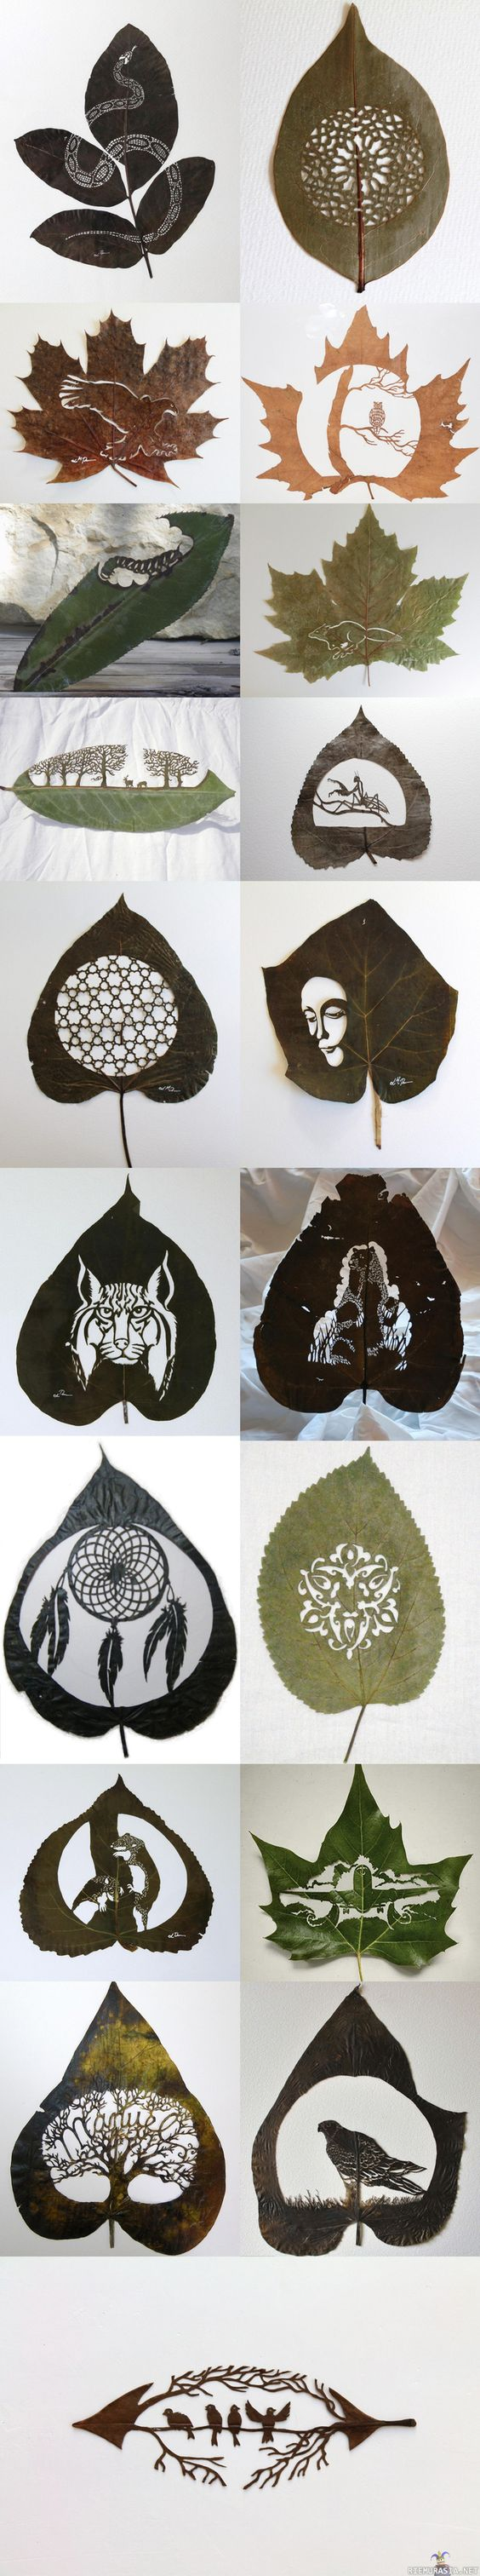 leaf-cutting-art-15